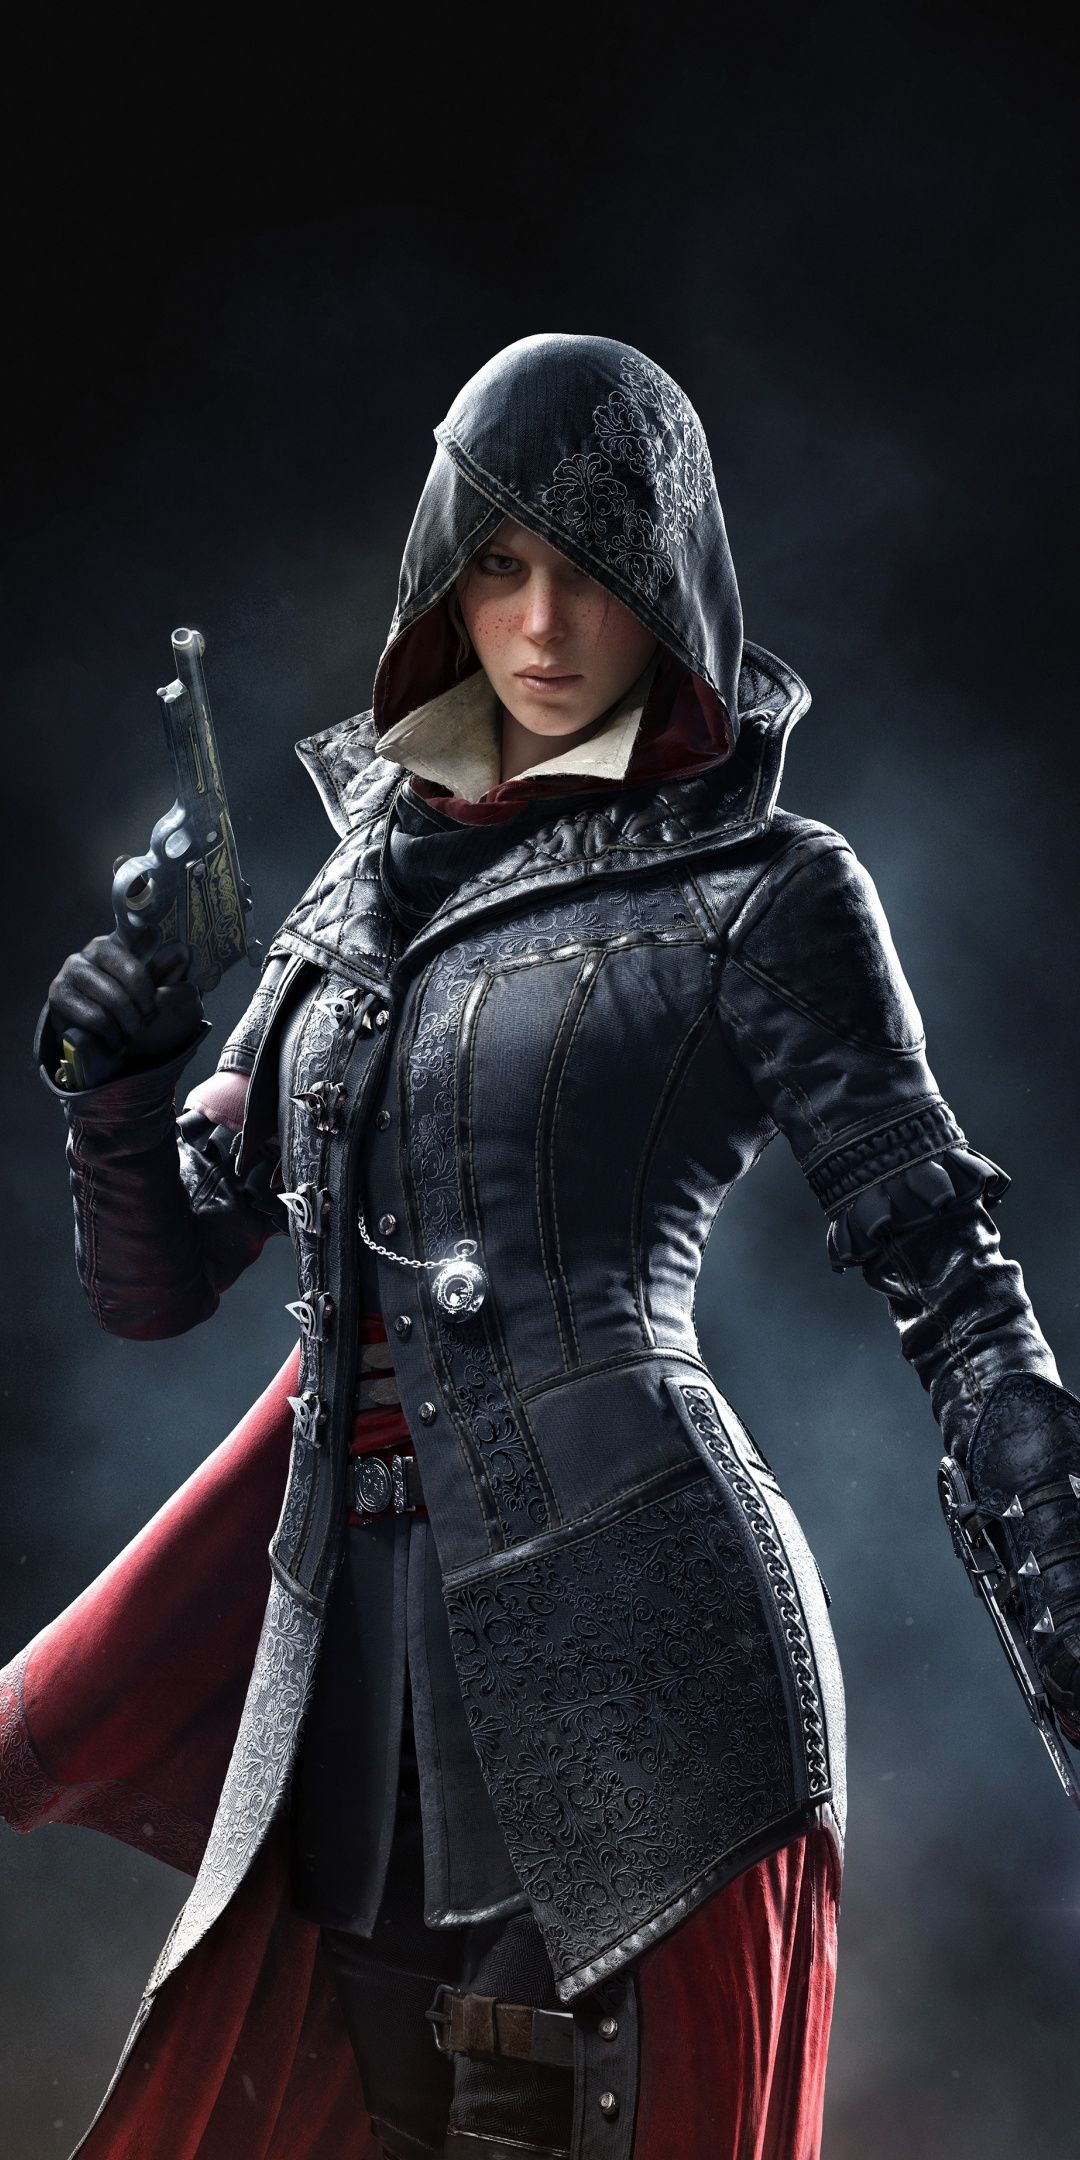 Assassin S Creed Syndicate Video Game Girl Warrior Art